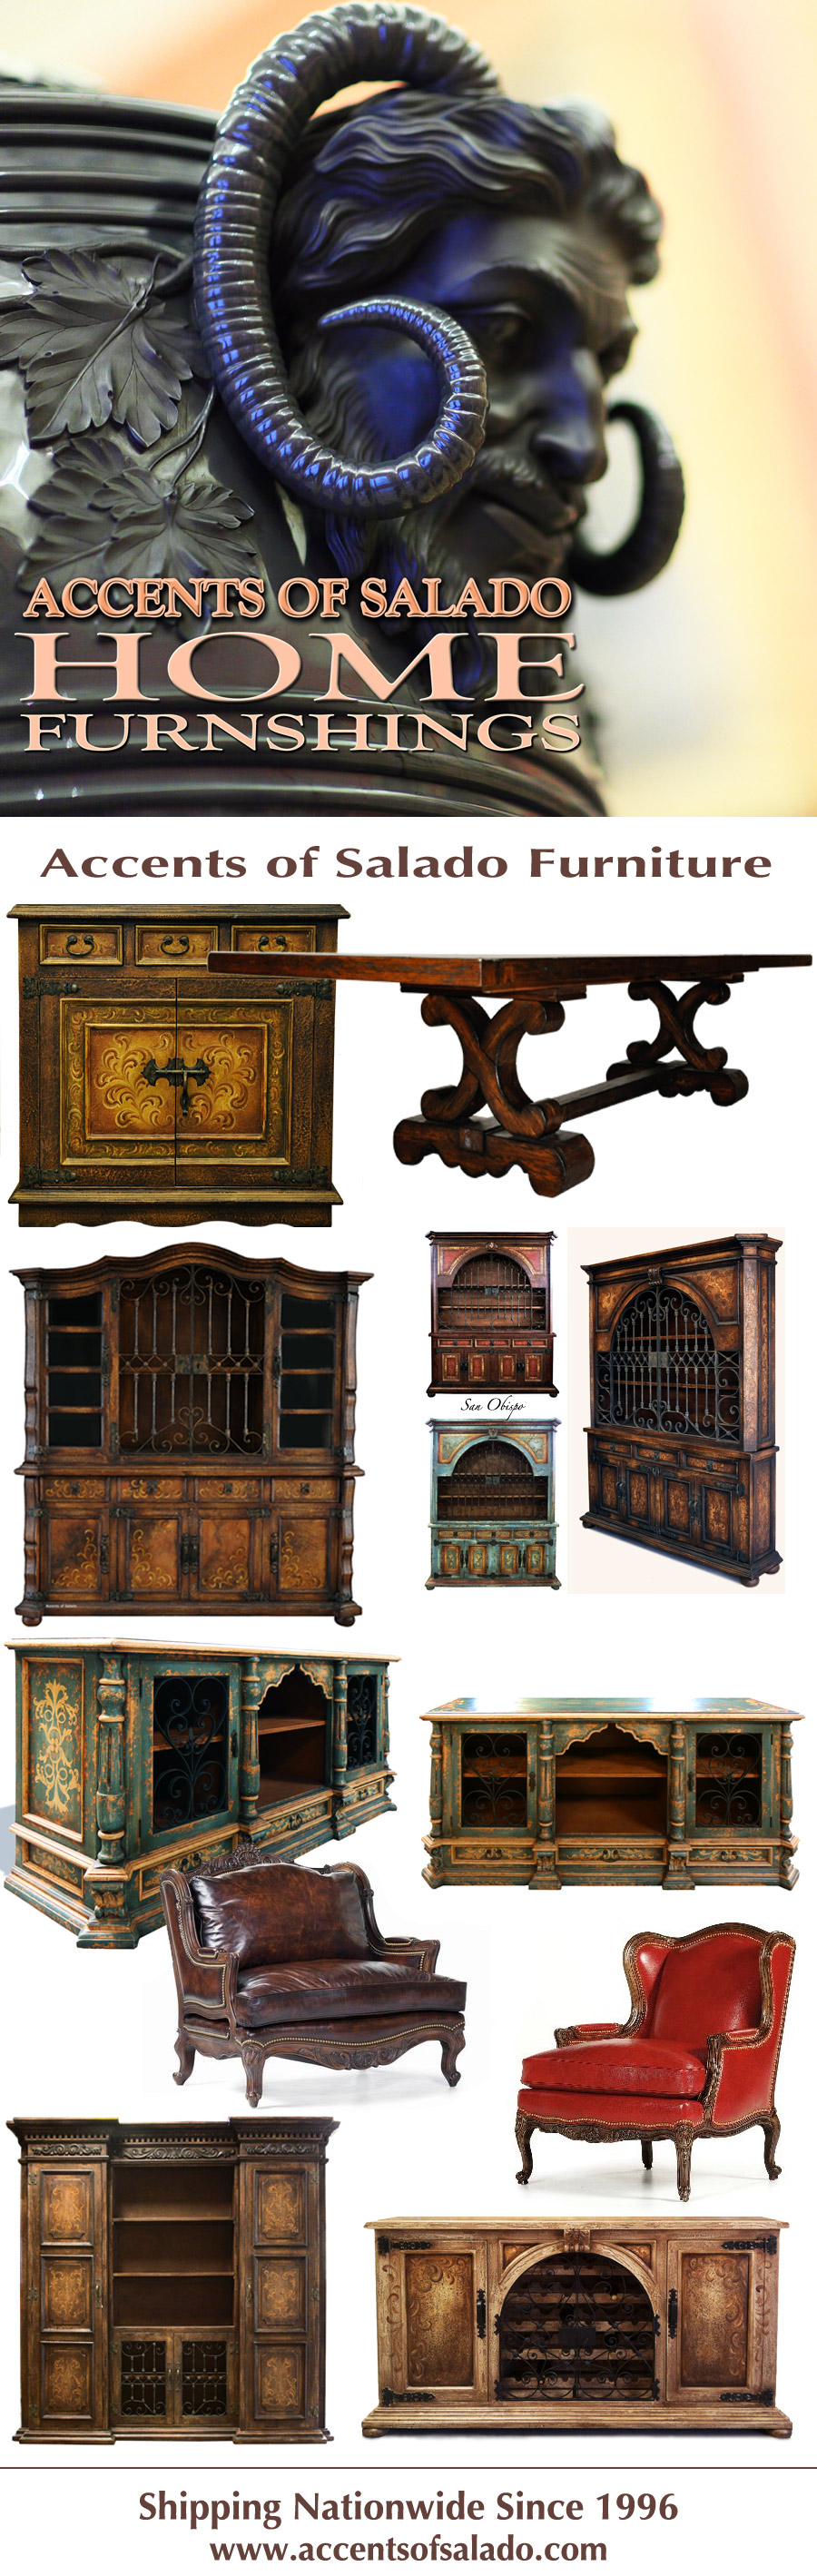 Accents of Salado has your style.. We furnish Spanish ...